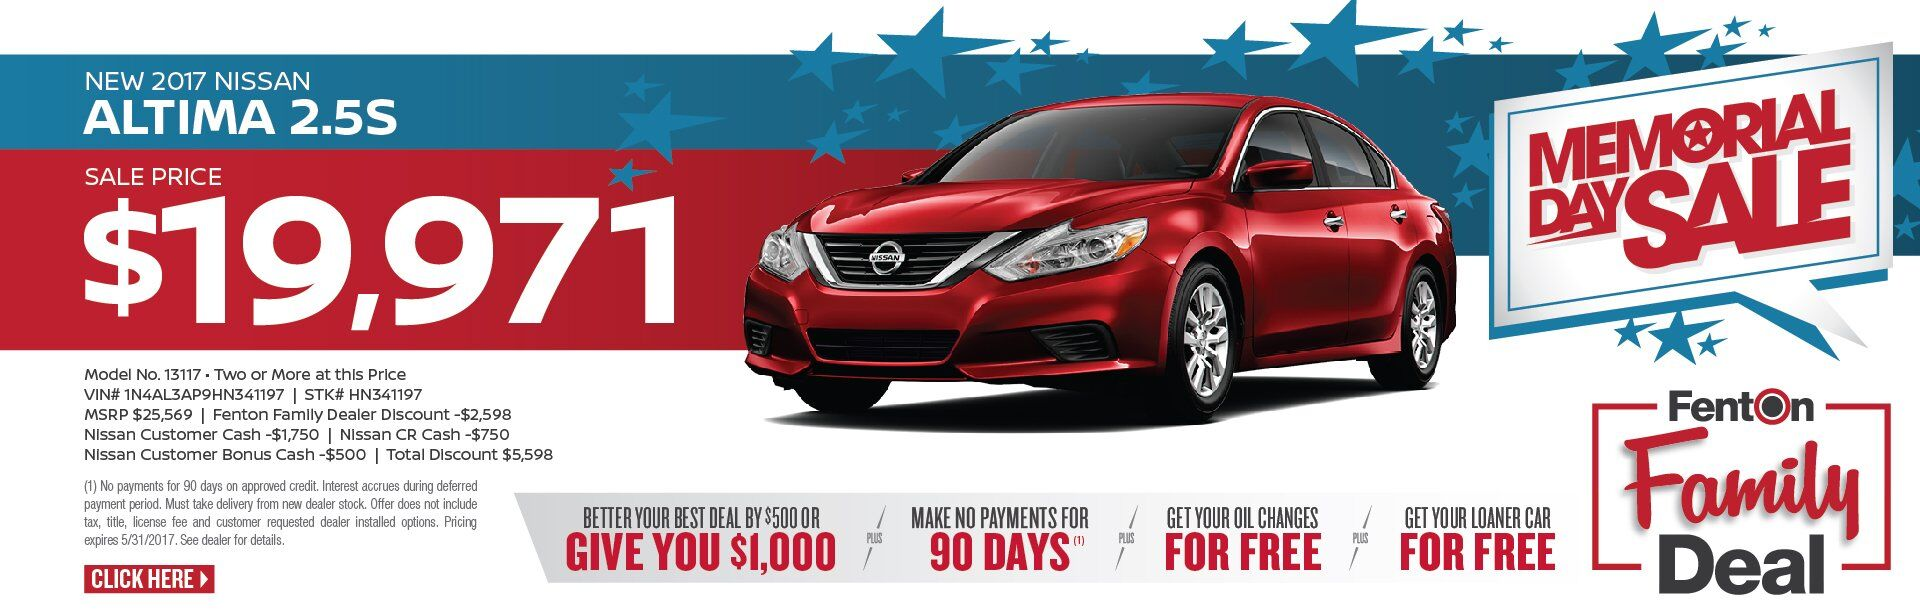 Memorial Day Sale - Altima